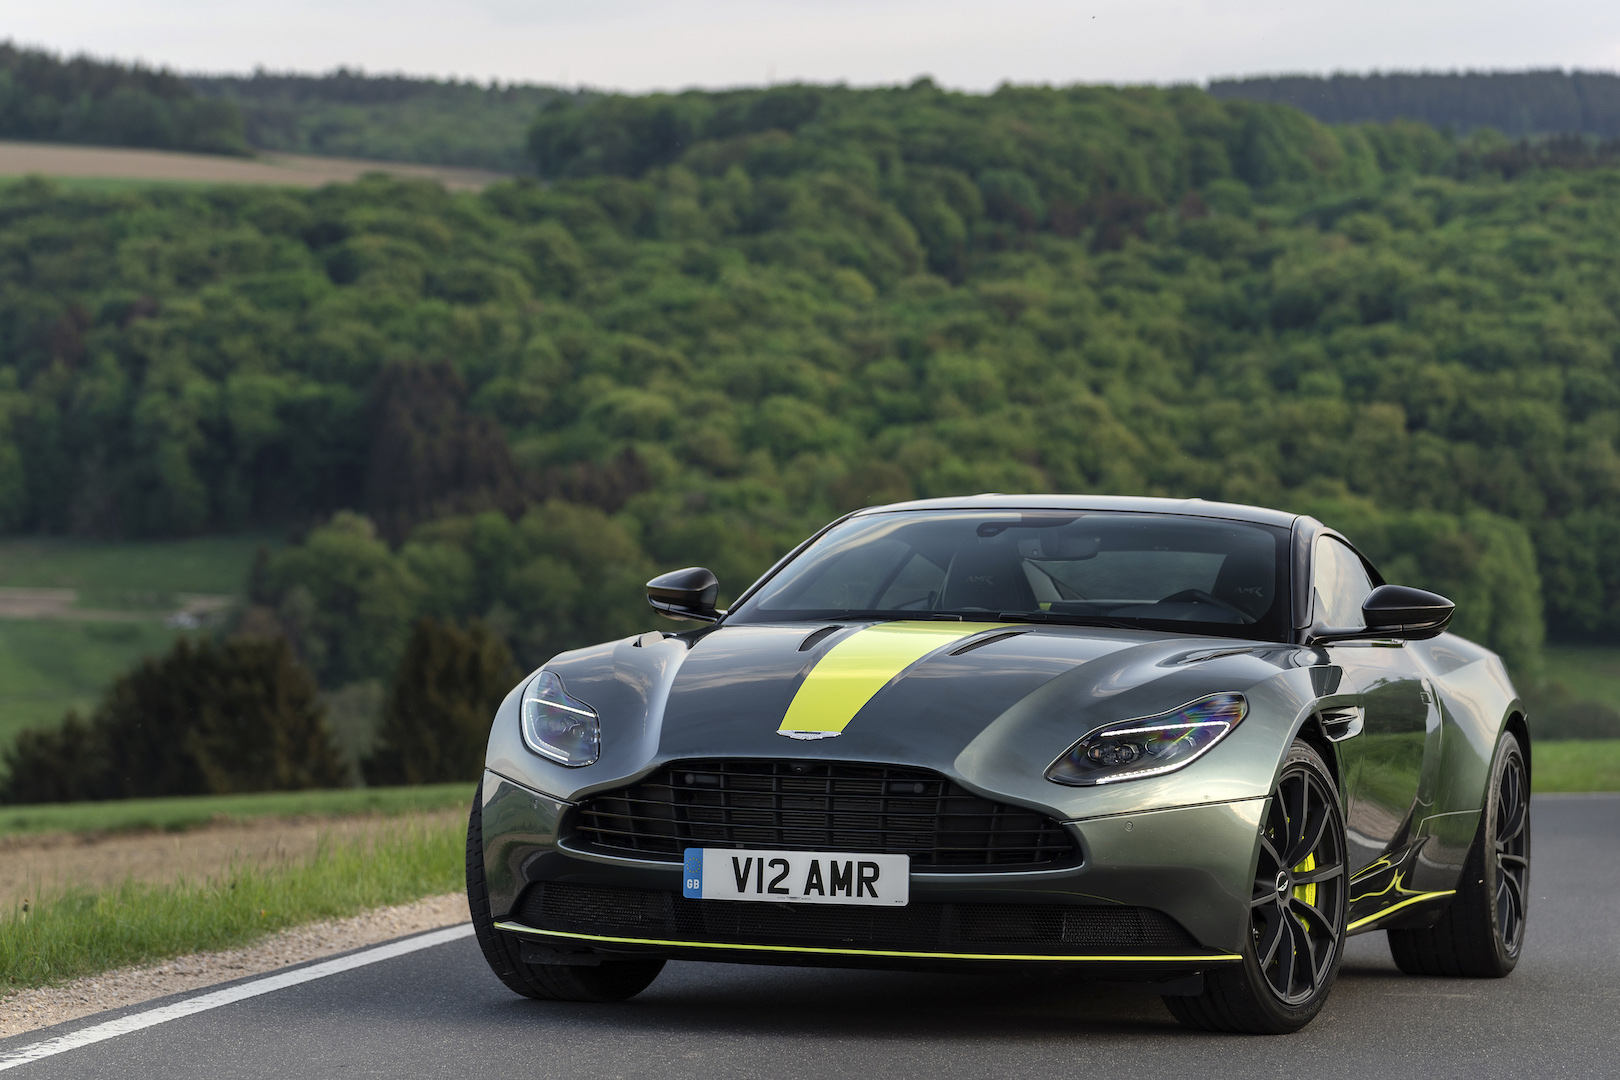 2019 Aston Martin Db11 Amr First Drive Review Aston Keeps Fussing Over Its V 12 Grand Tourer